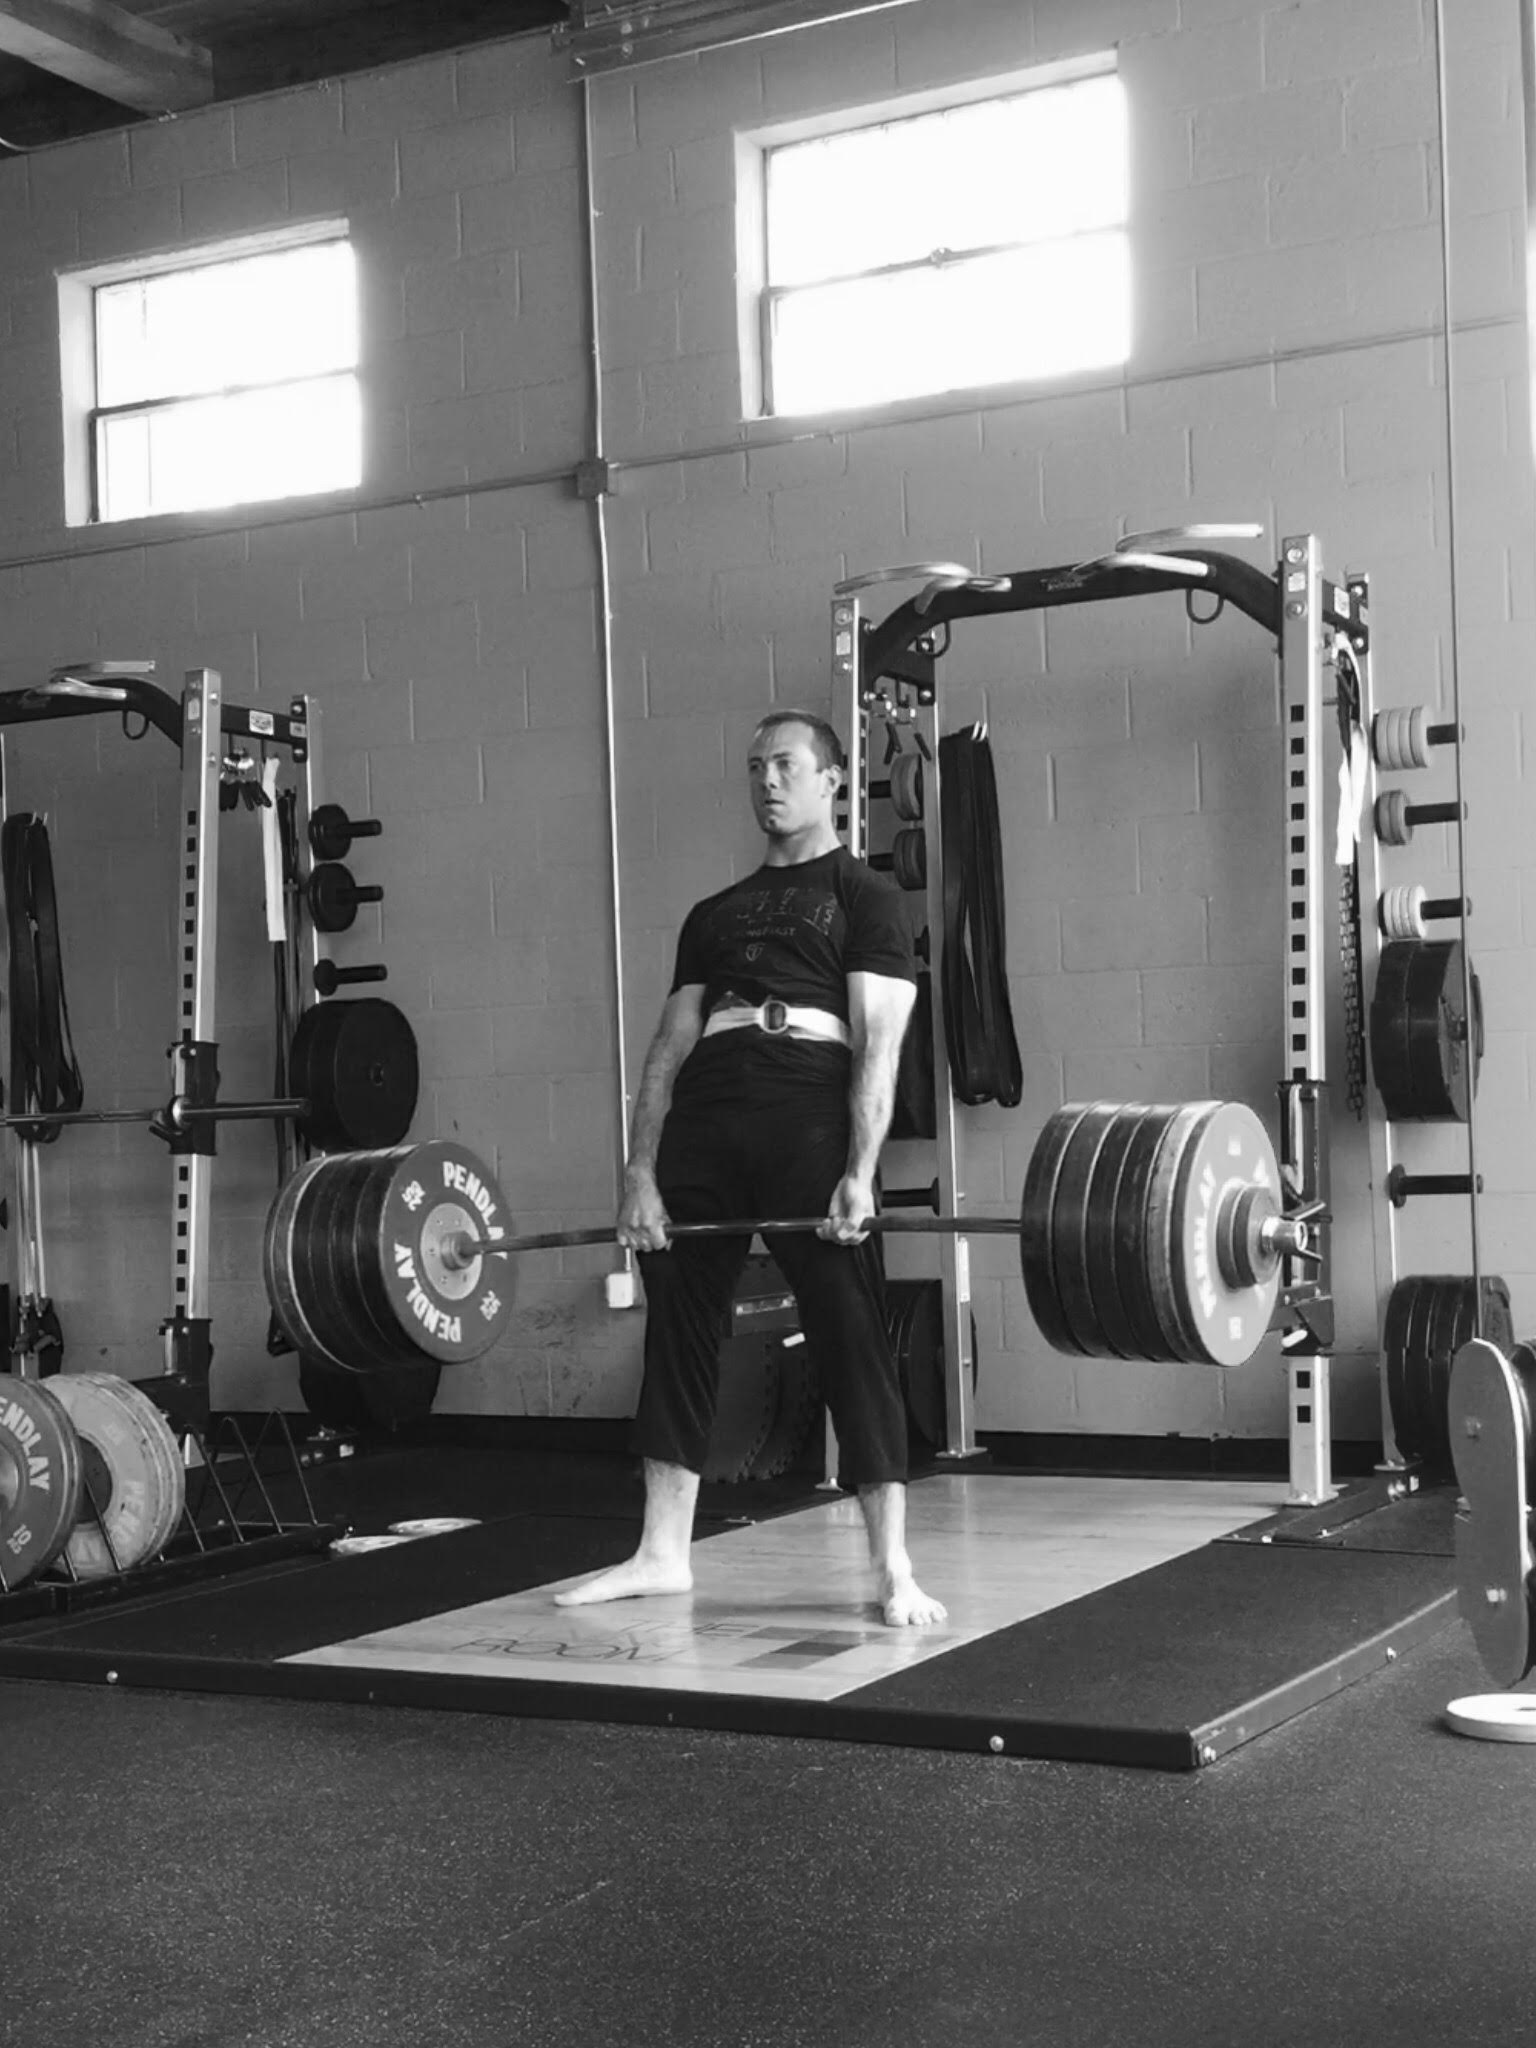 My 571 lb deadlift: a picture that took 5+ years and hundreds of hours of practice.